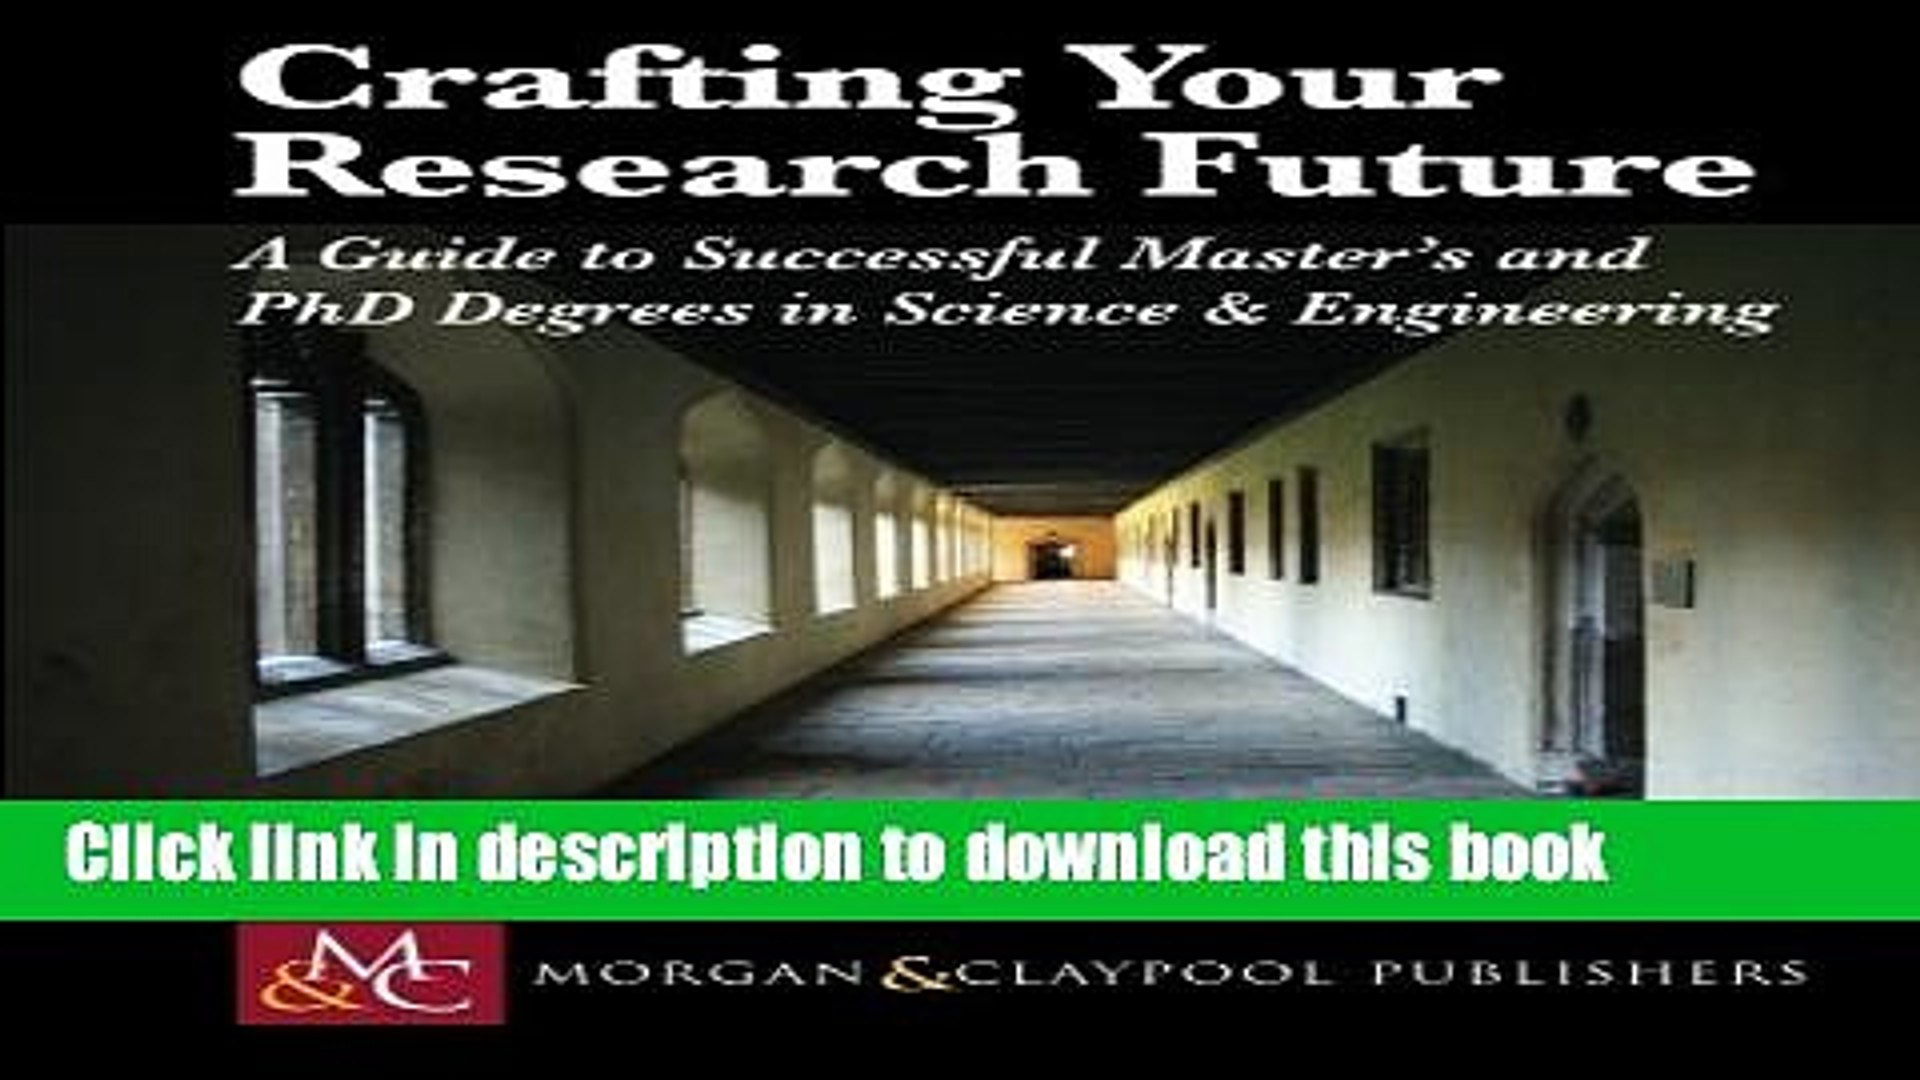 Read Crafting Your Research Future: A Guide to Successful Master s and Ph.D. Degrees in Science